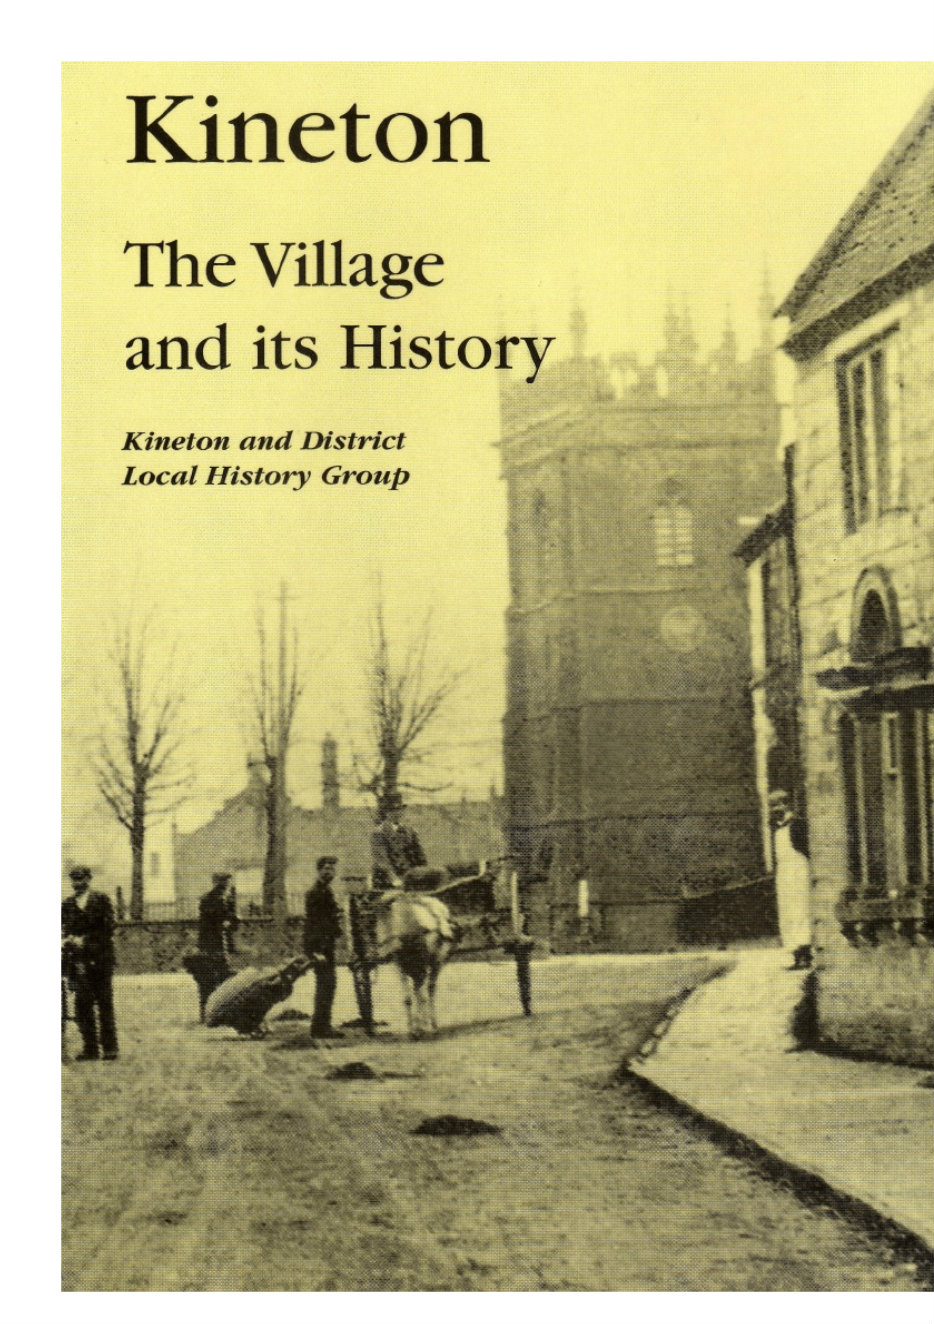 Kineton-The-Village-and-its-History-preview pdf